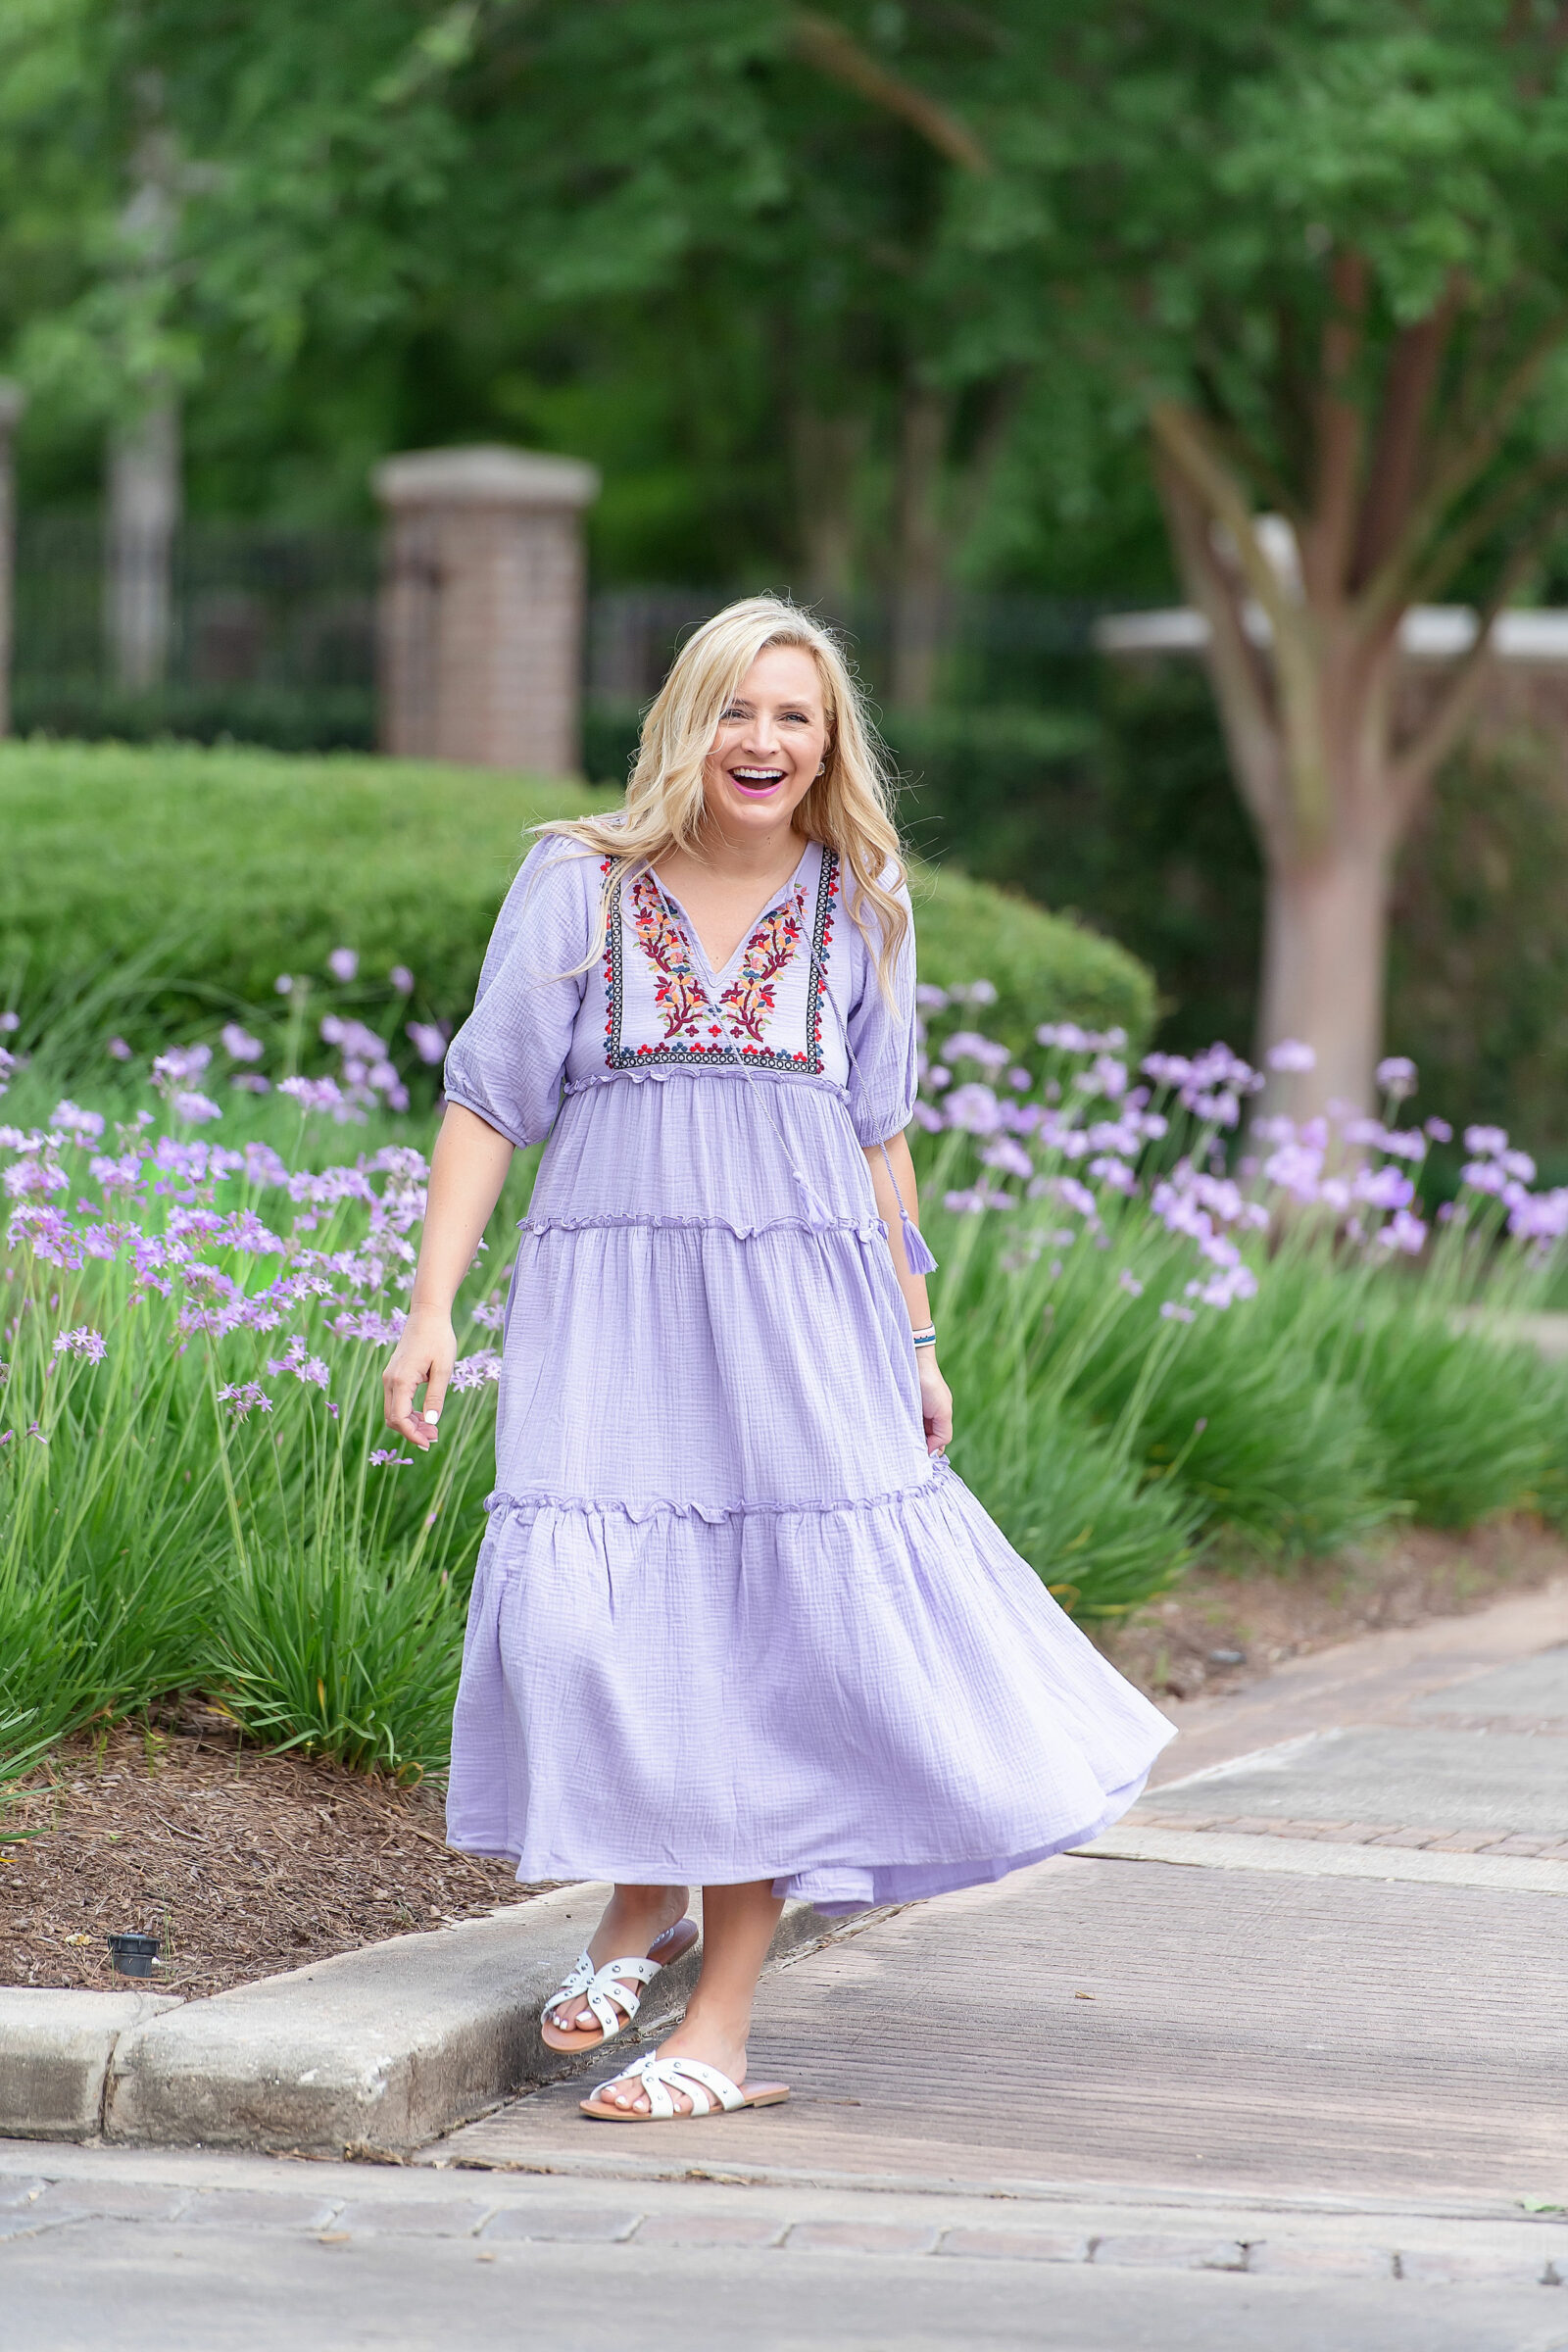 Best Sellers by popular Houston fashion blog, The House of Fancy: image of a woman standing outside by some purple flowers and wearing a floral embroidered purple tiered maxi dress.